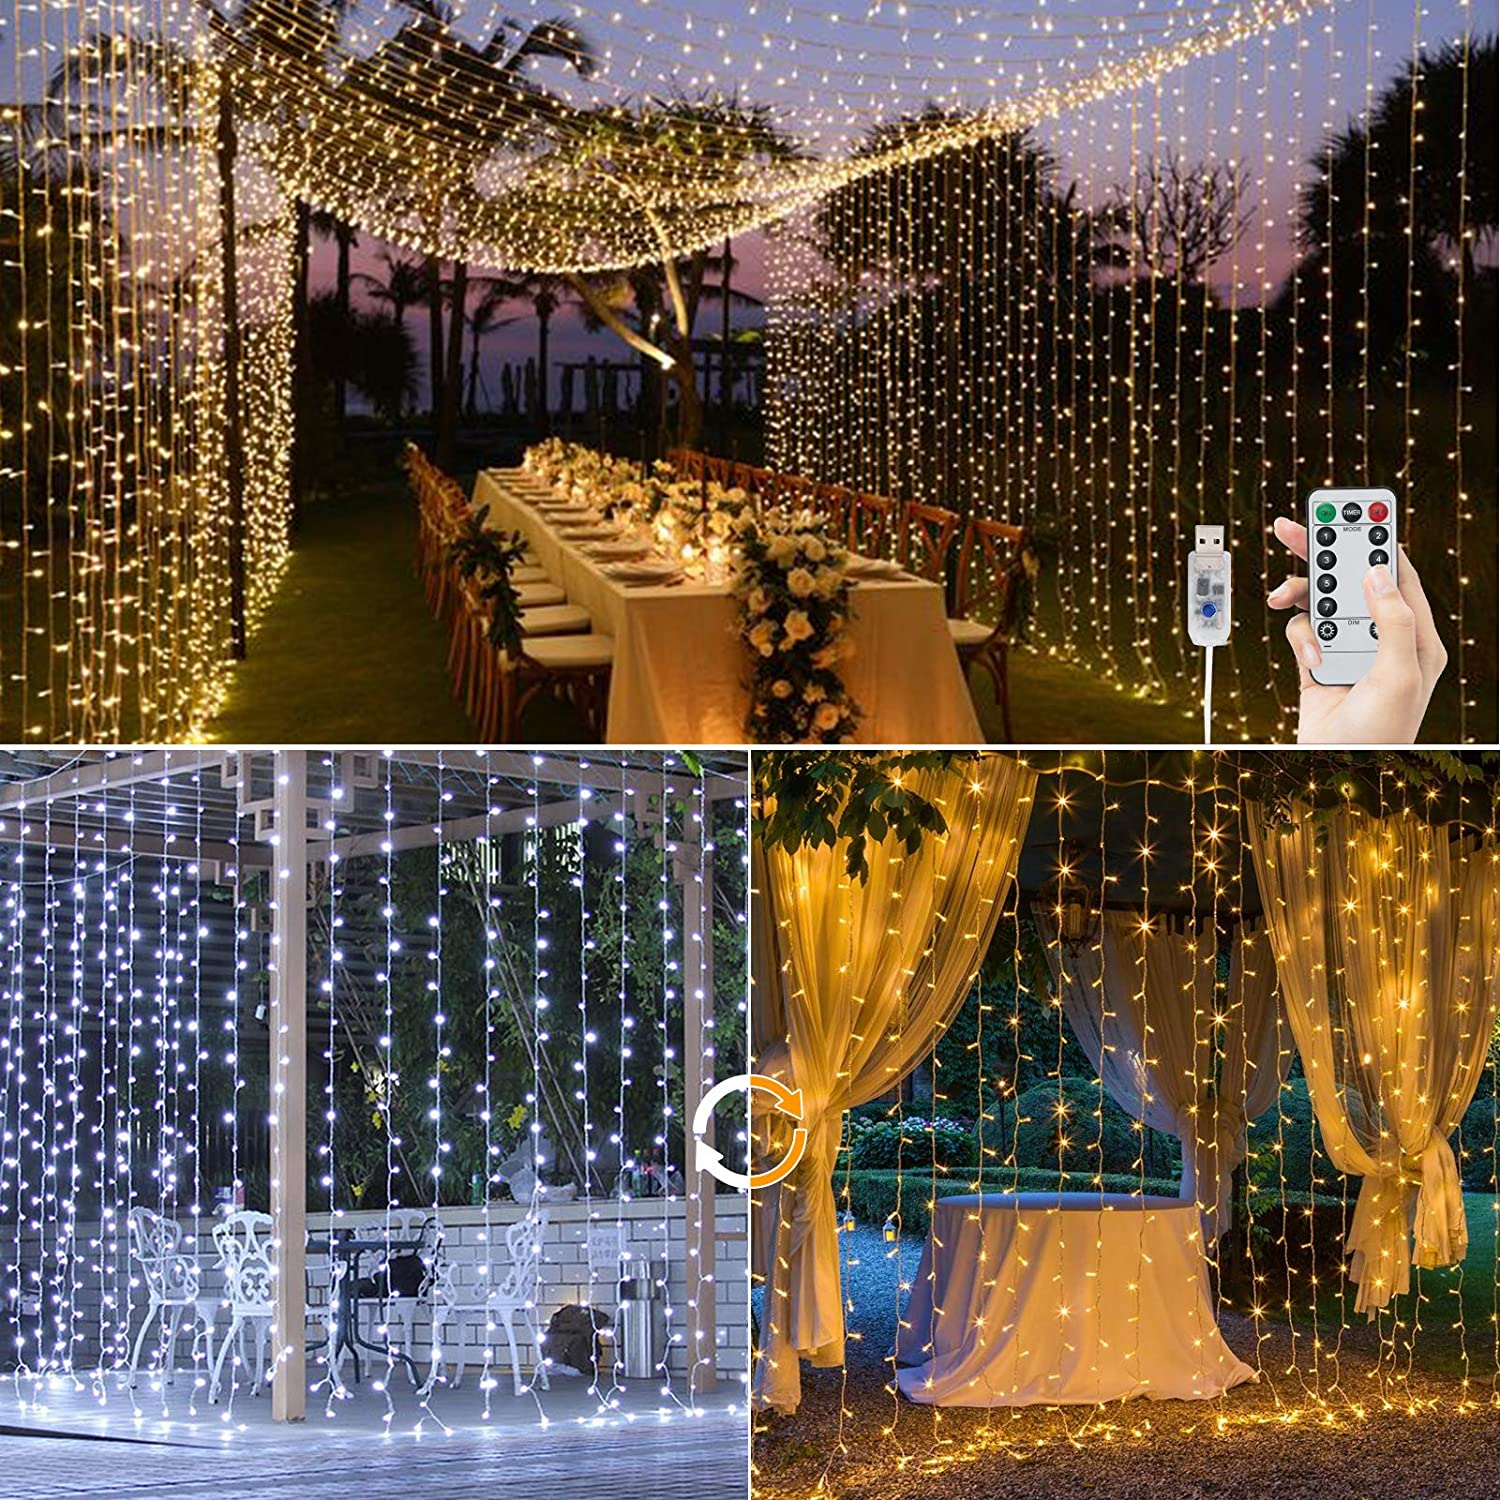 BLOOMWIN Dimmable LED Curtain Window Light USB 3m x 3m 300LED String Lights with 9 Modes Fairy Lights DOWN TO £9.99 @ Amazon